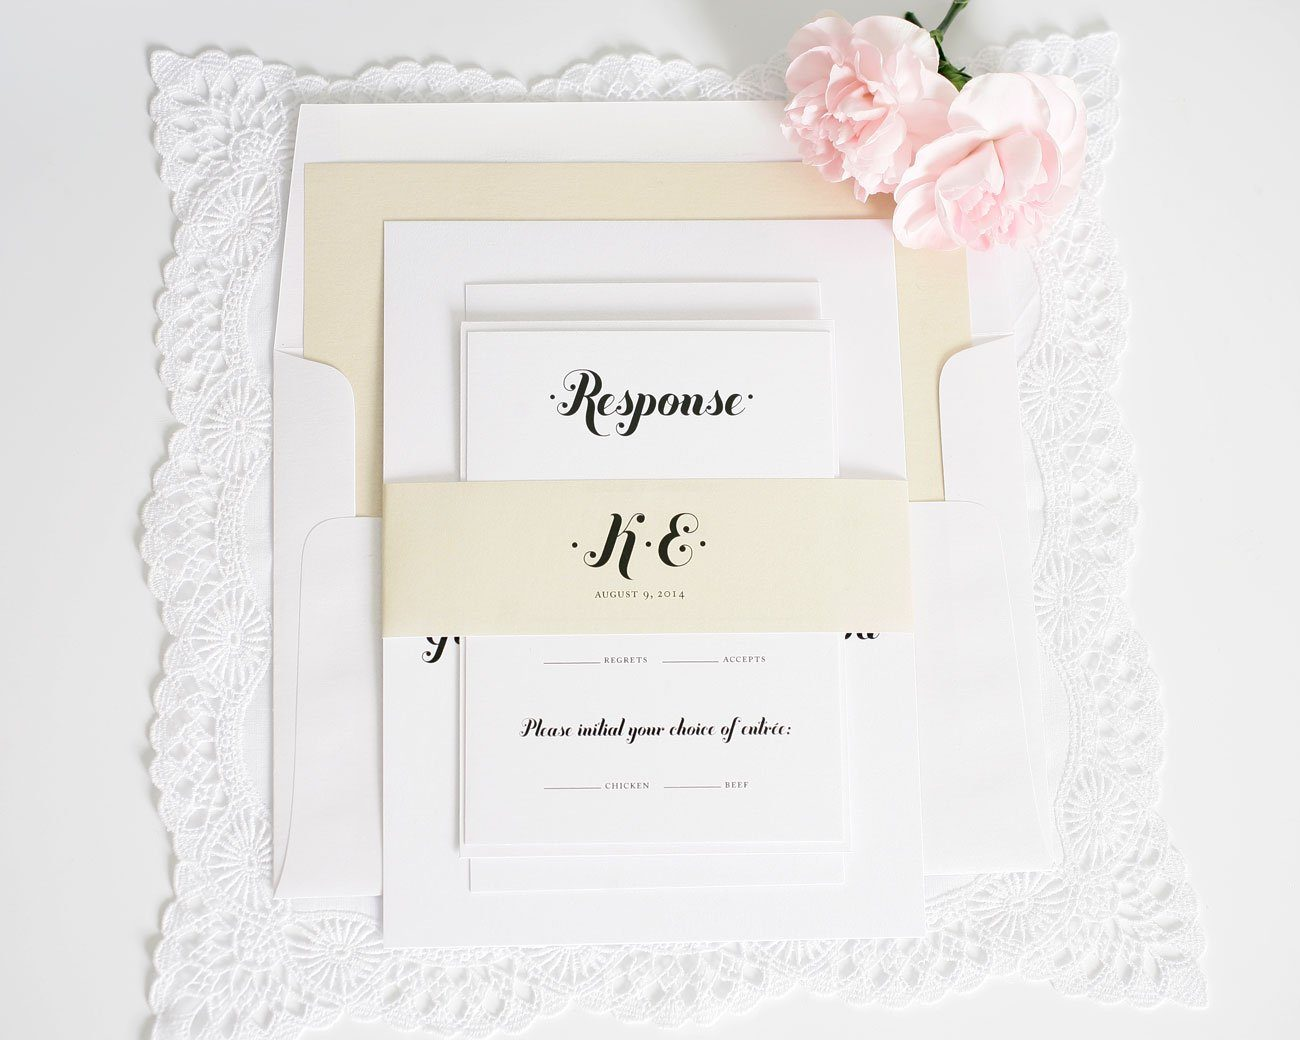 Script wedding invitations in champagne